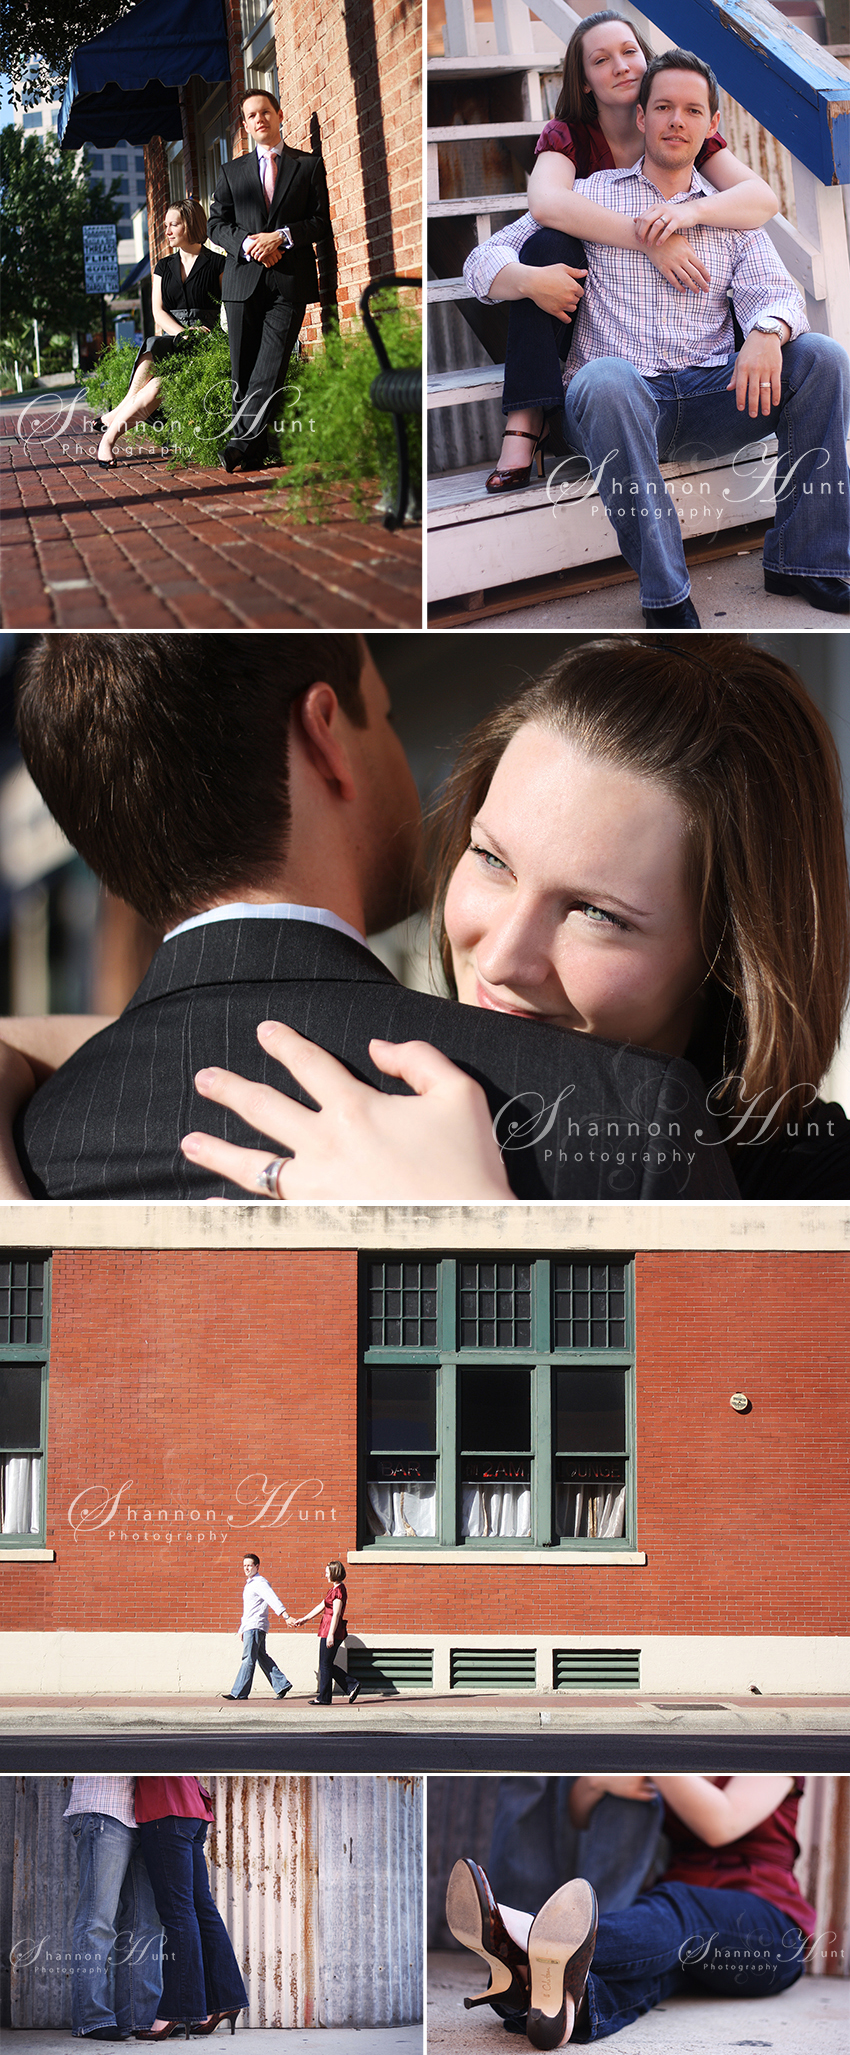 Couple by Shannon Hunt Dallas TX family photographer